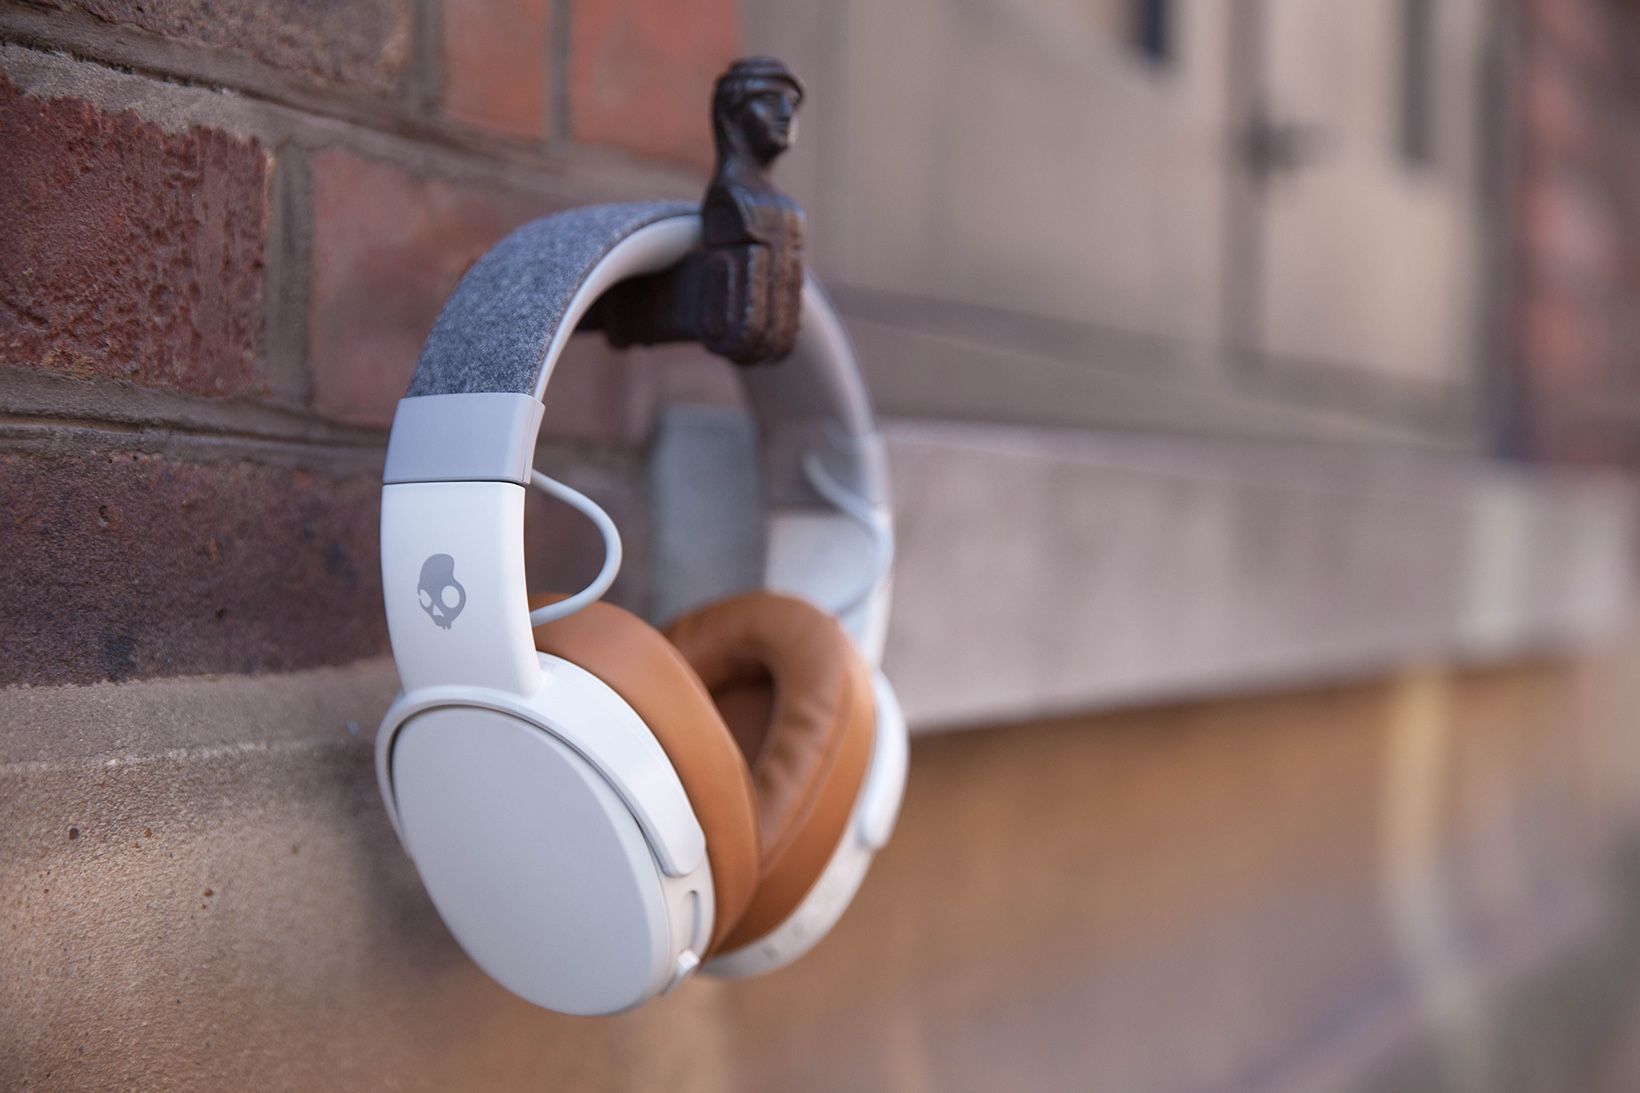 edf8a0ea5a4 Skullcandy Crusher Wireless Headphones Launch Party - 3832735 ...